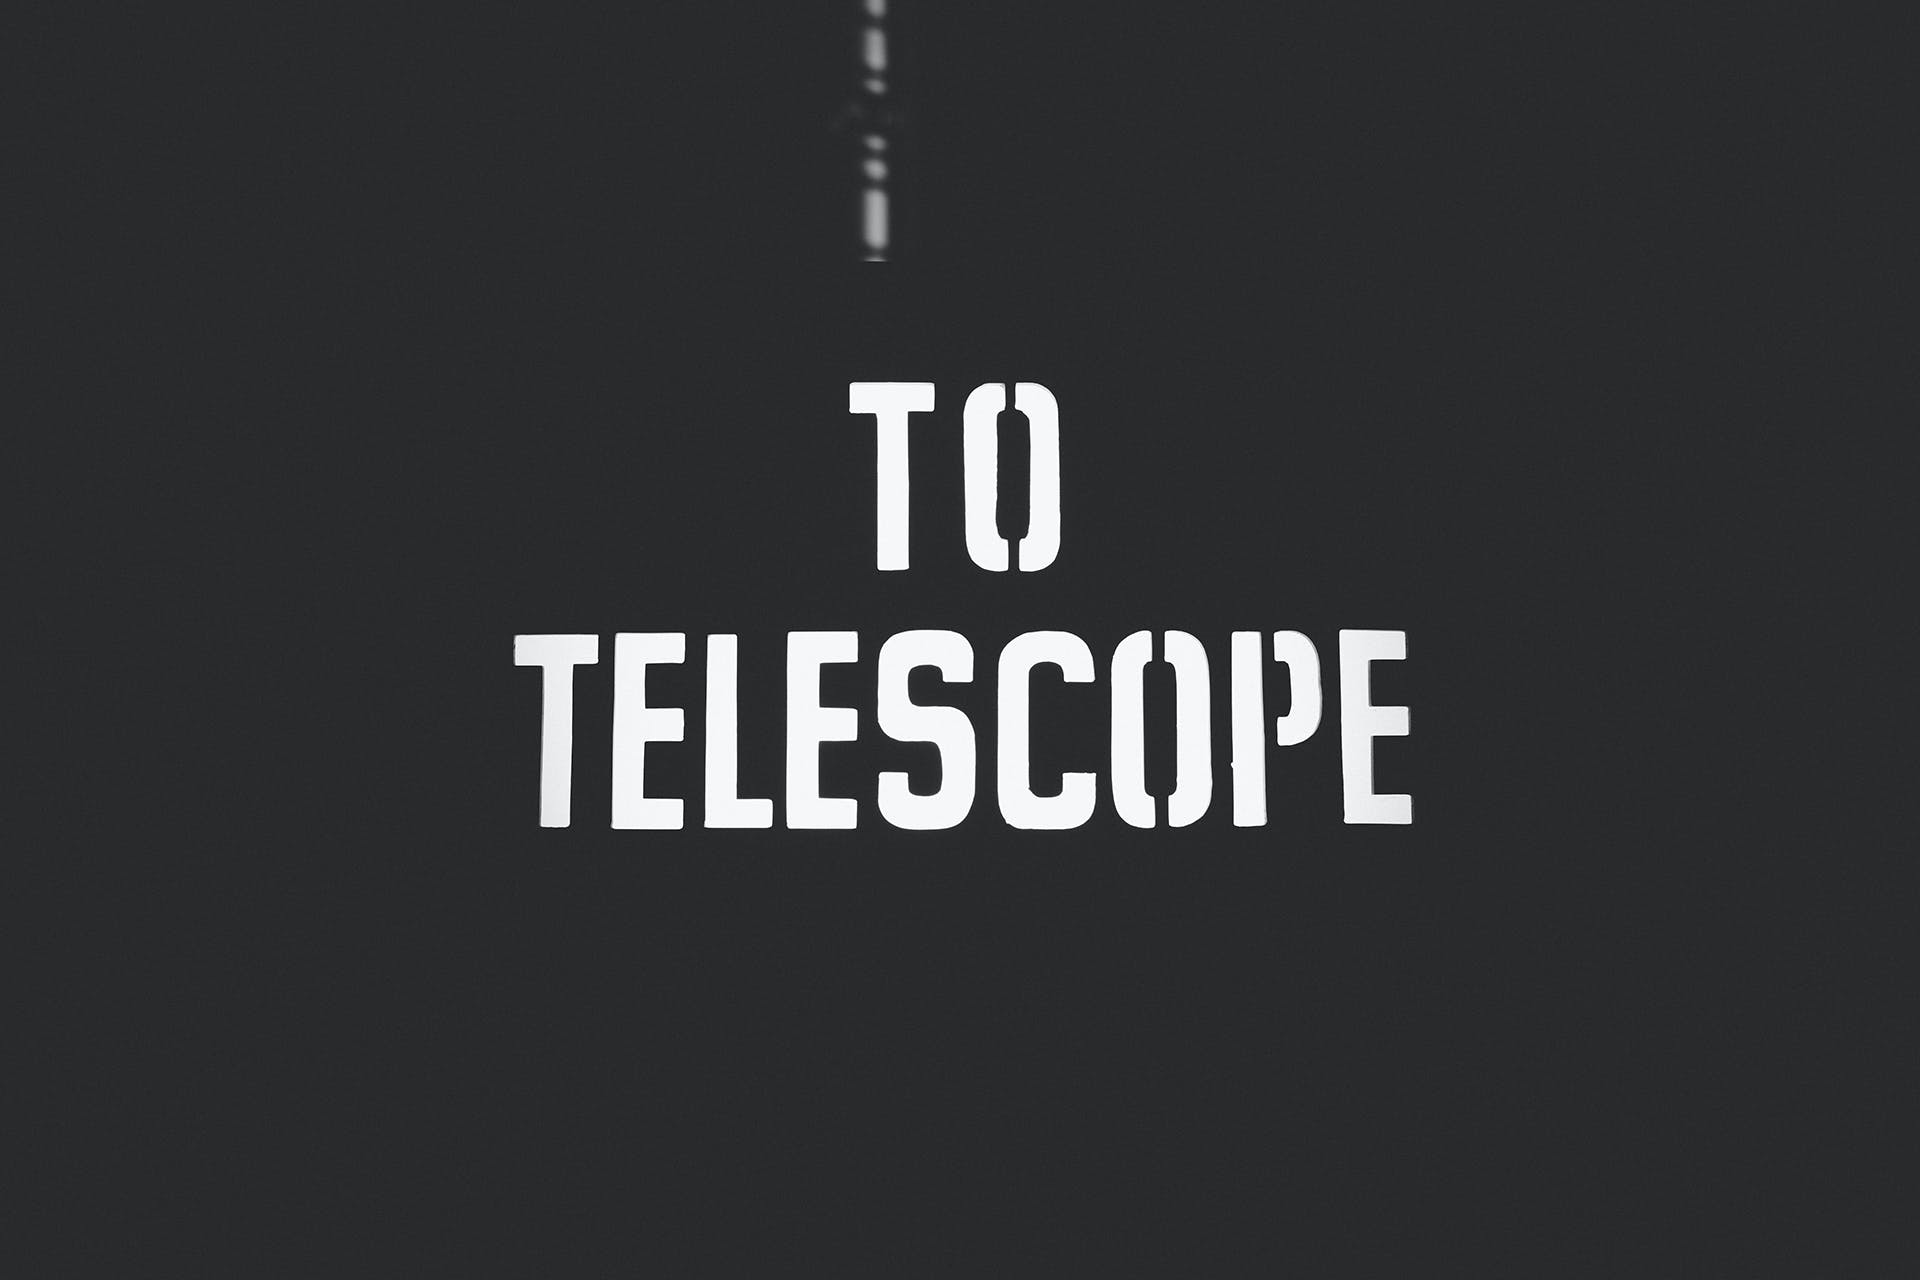 Black Background With to Telescope Text Overlay